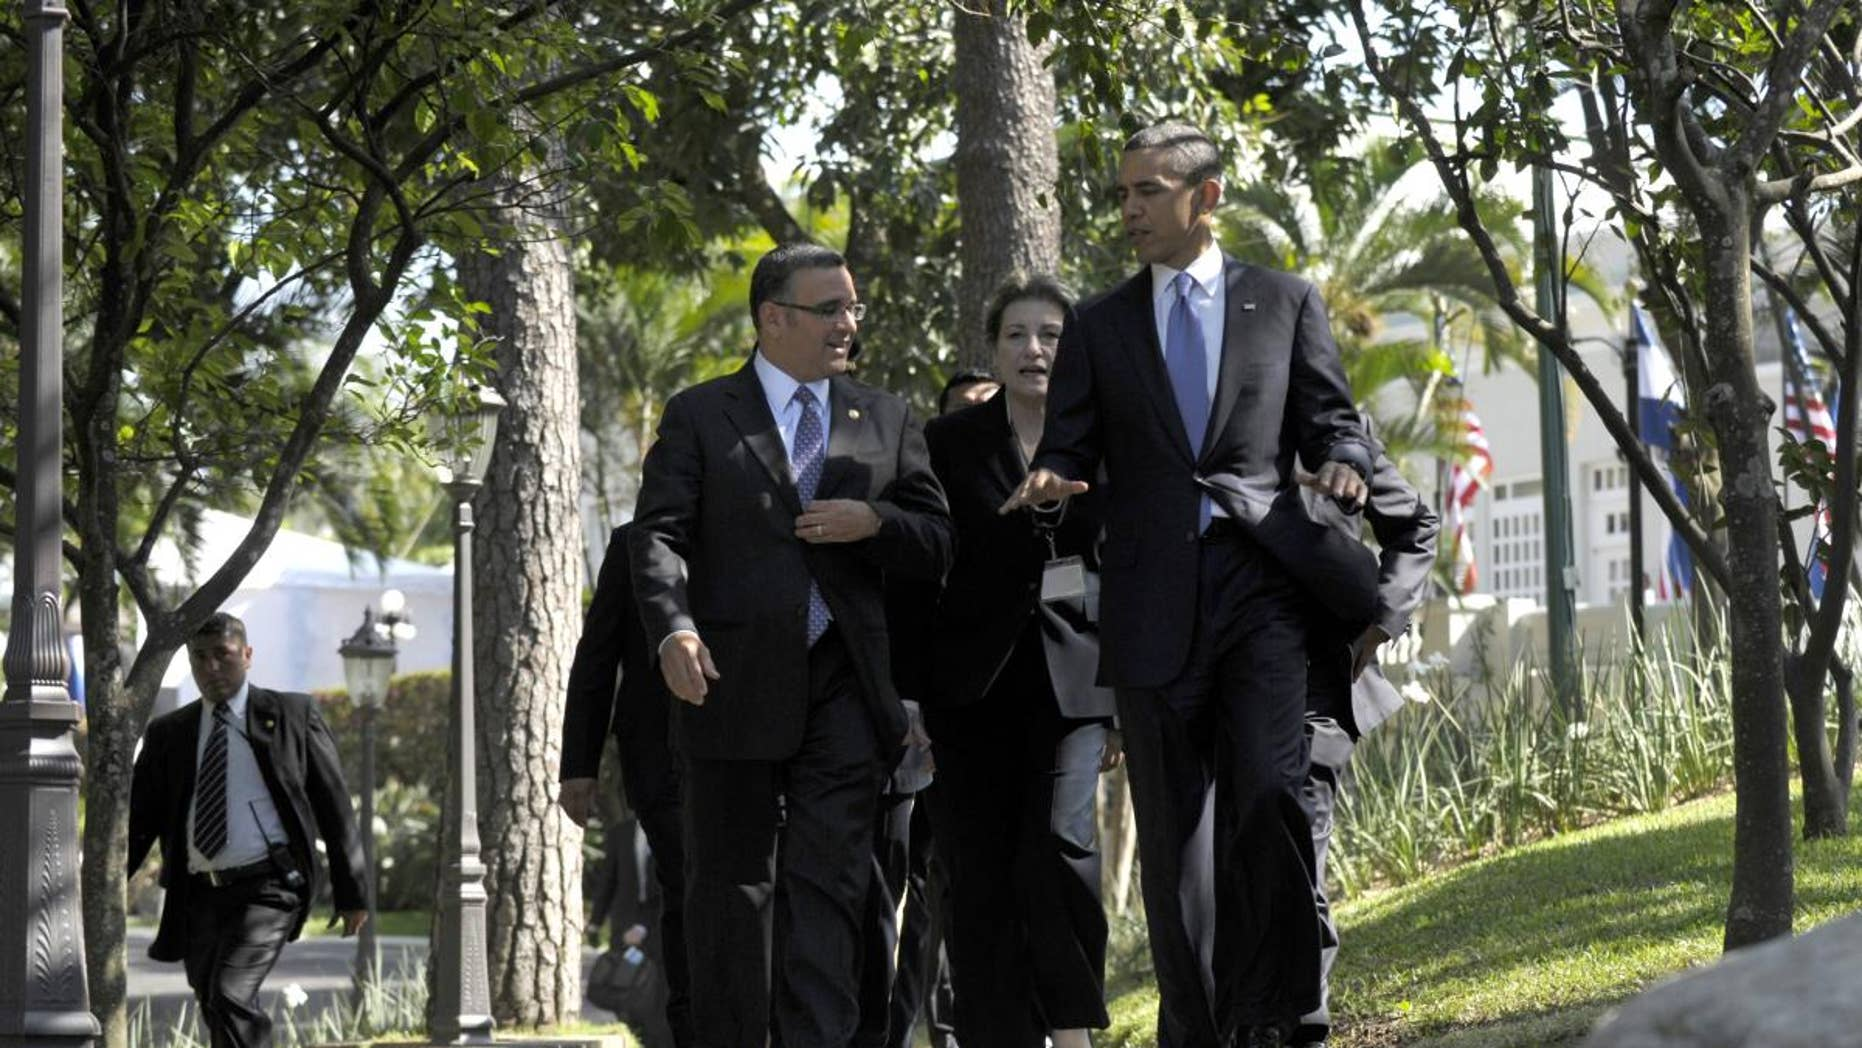 President Barack Obama and President of El Salvador President Mauricio Funes walk to a joint press conference at the Casa Presidential in San Salvador, El Salvador, Tuesday, March 22, 2011. (AP Photo/Susan Walsh)